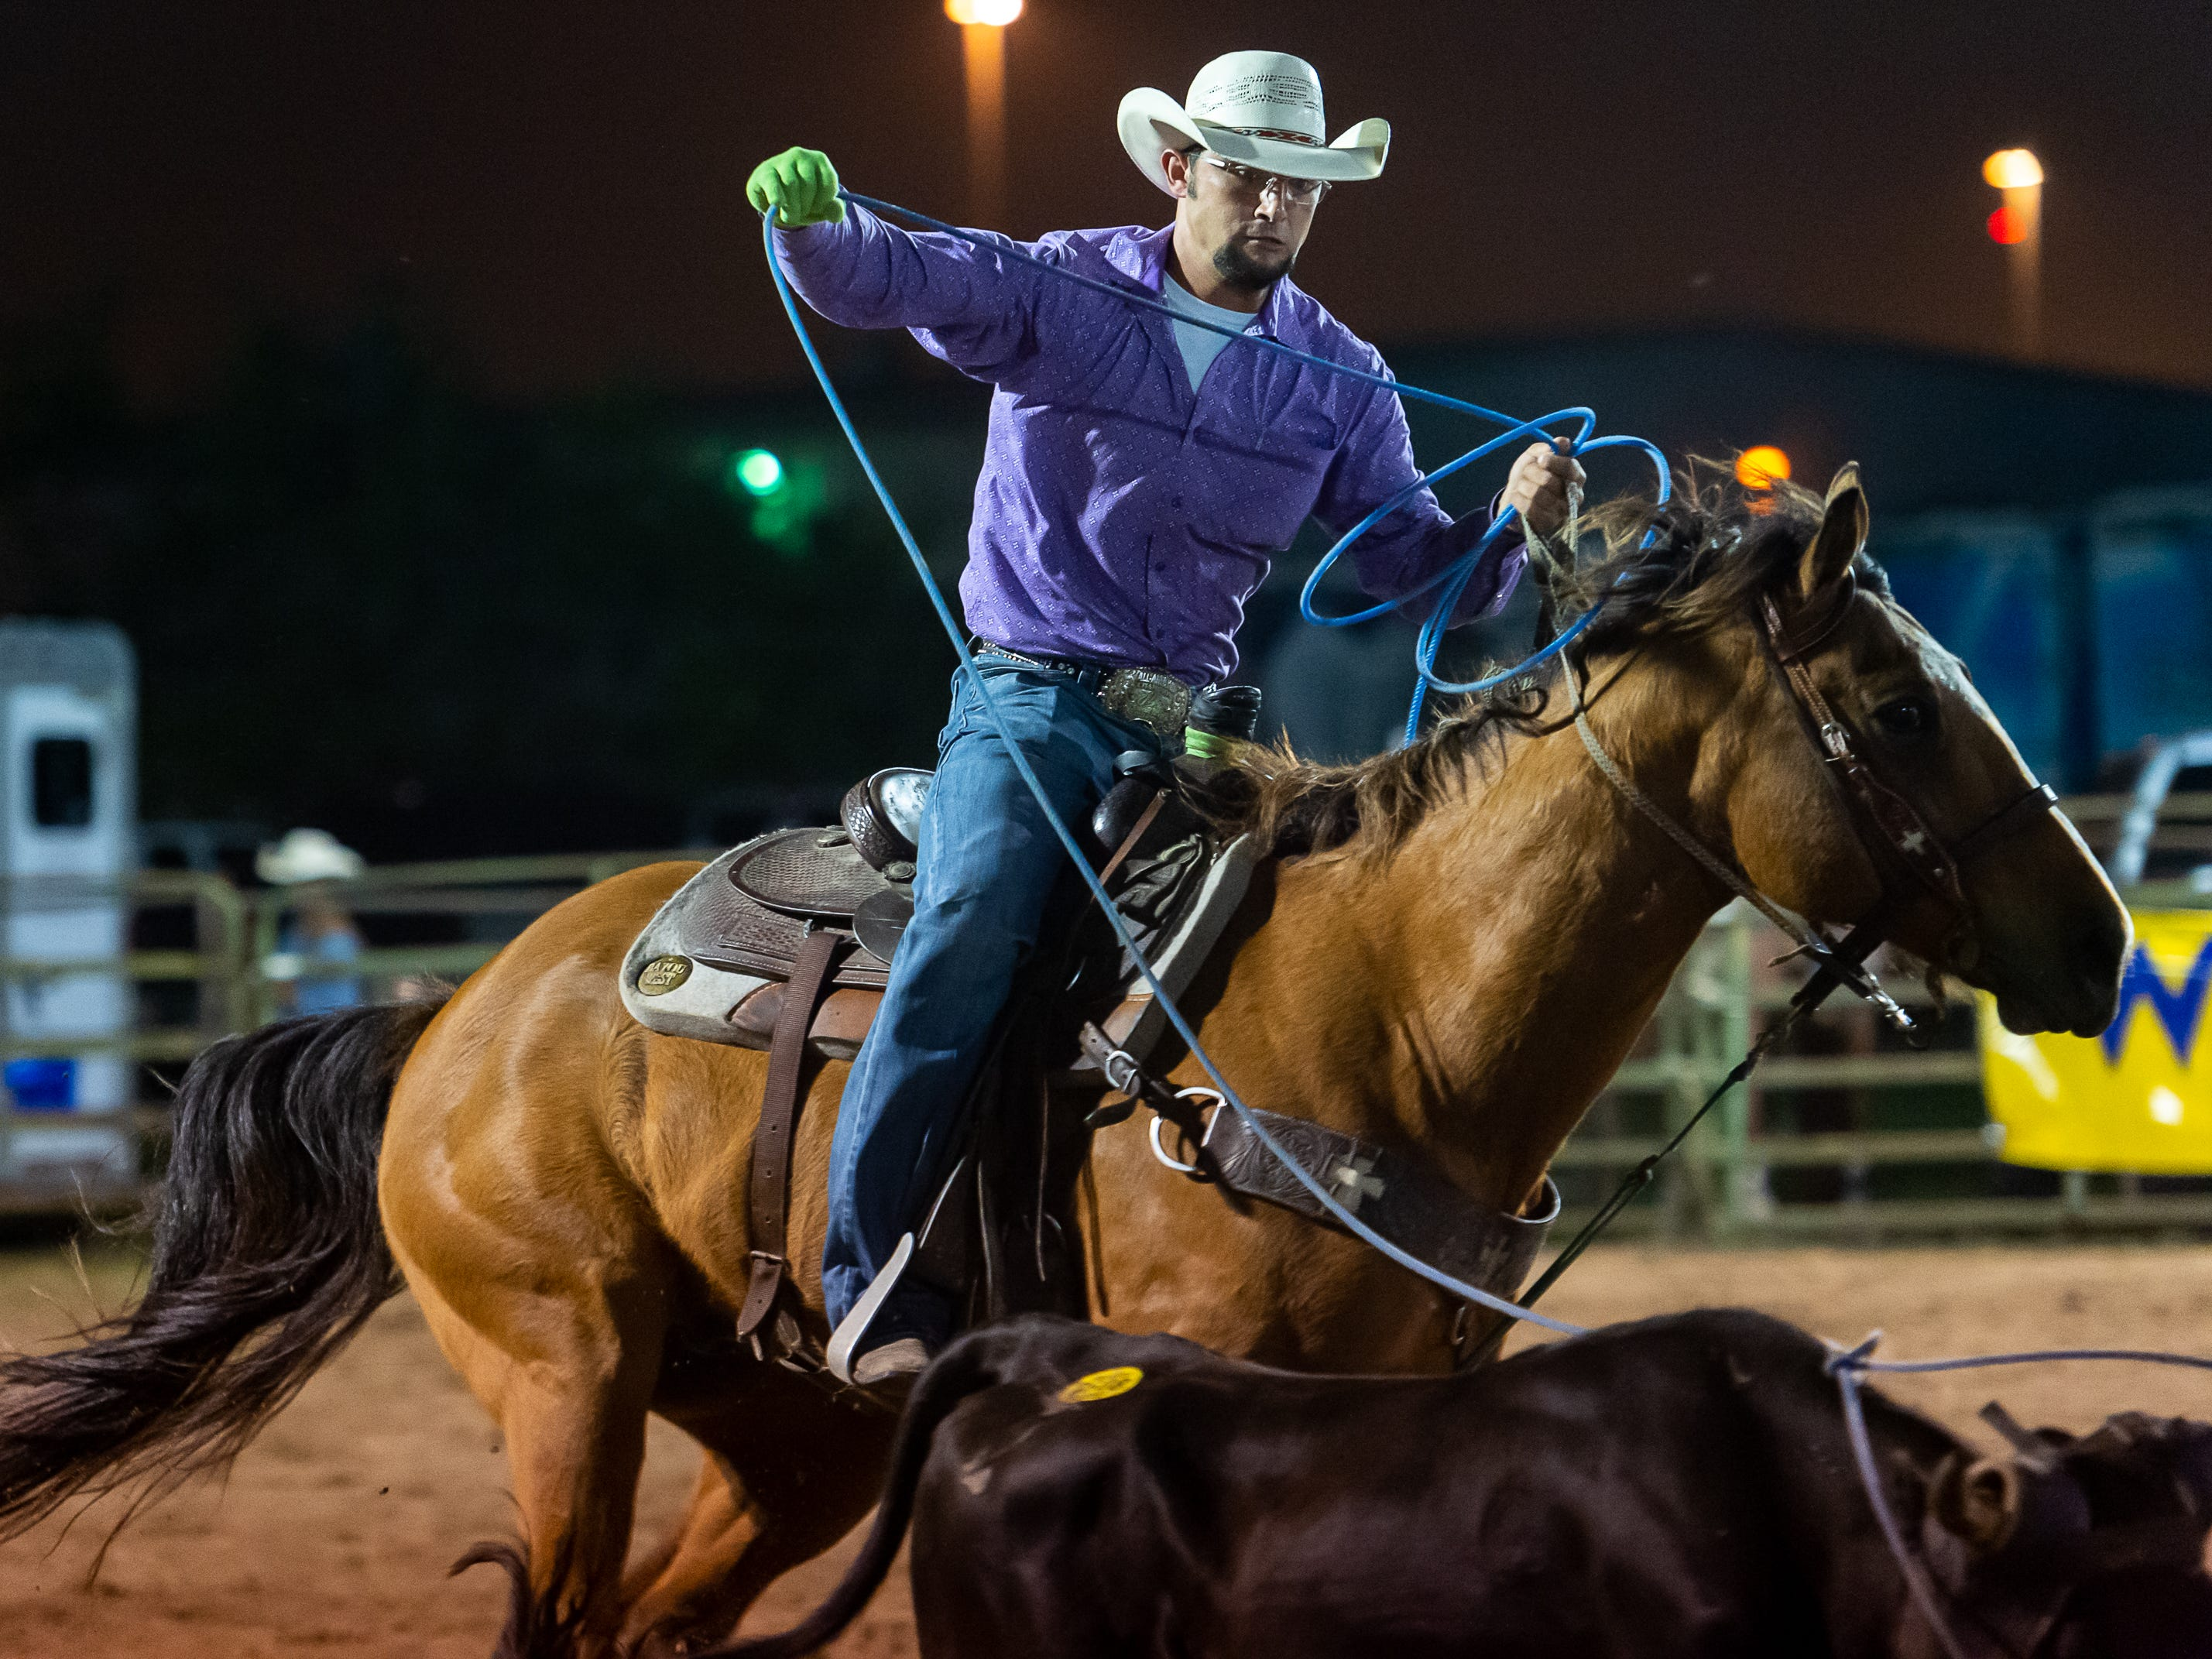 Tyler Geheb competses in the team roping event as the Cajun Rodeo Association host the Cowboys Spring Stampede 19 Rodeo at Cowboys Arena in Scott, LA. Saturday, April 13, 2019.